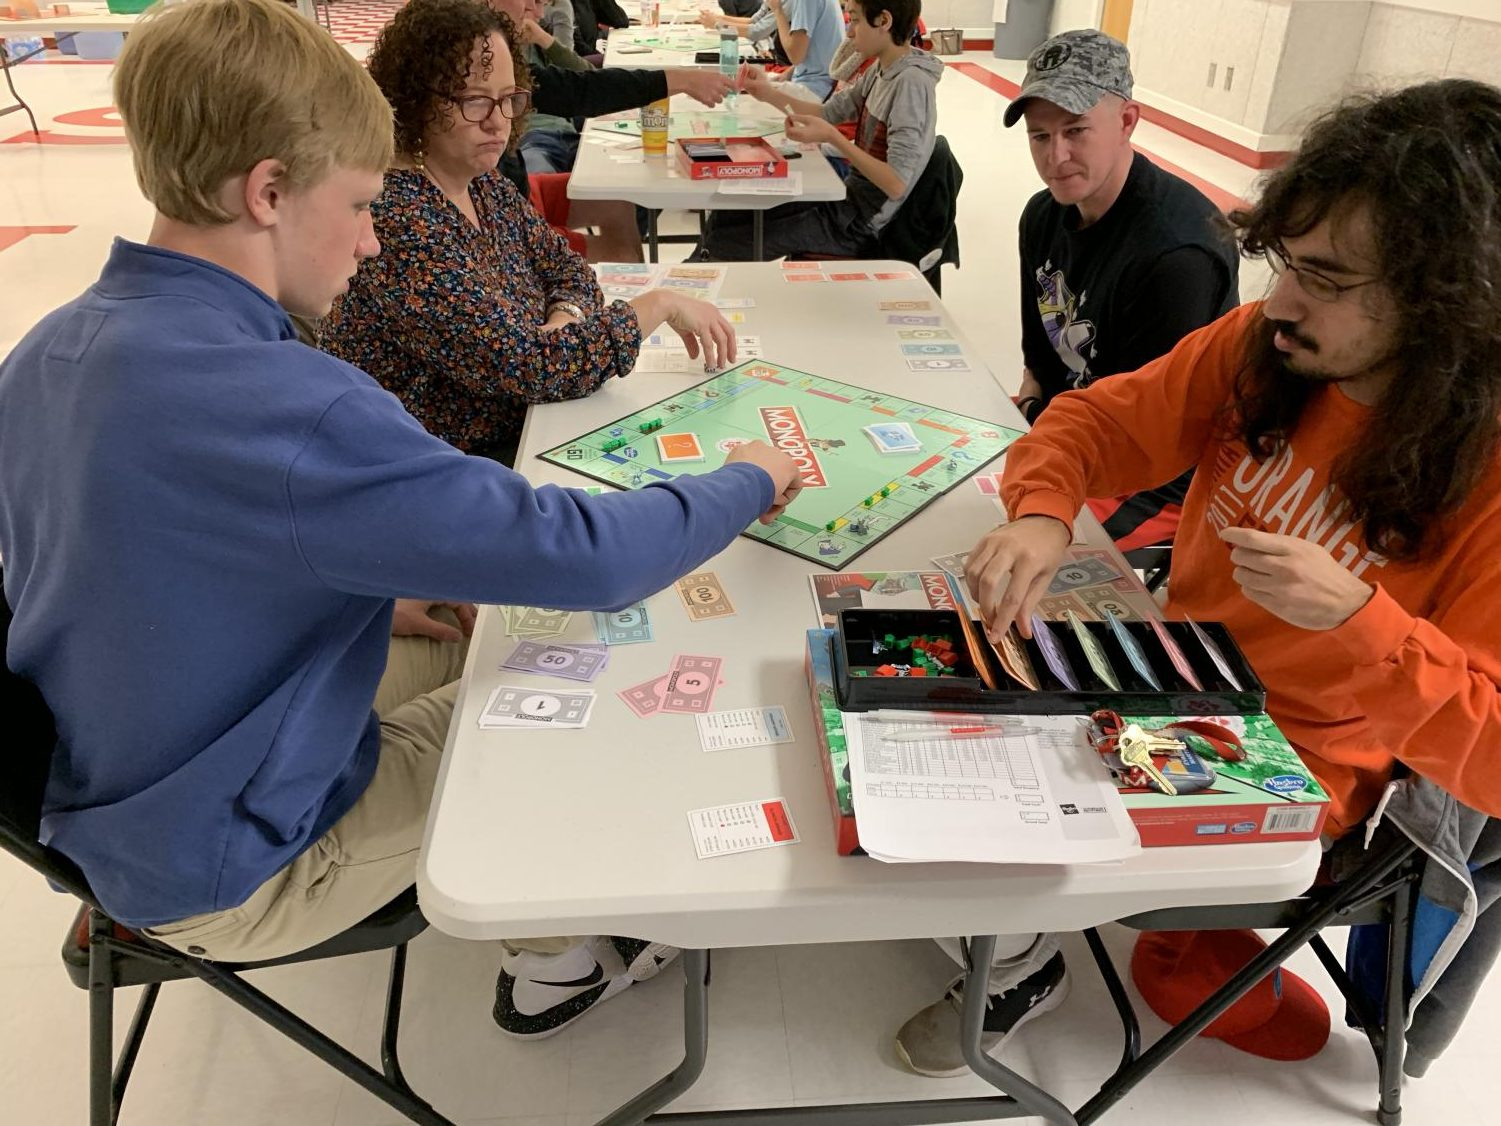 Senior Alex Bellem (left) moves his piece on the Monopoly board after a turn and Math teacher Evaristo Martins (Right) deals money as the broker for the first round of the day at the Monopoly tournament.